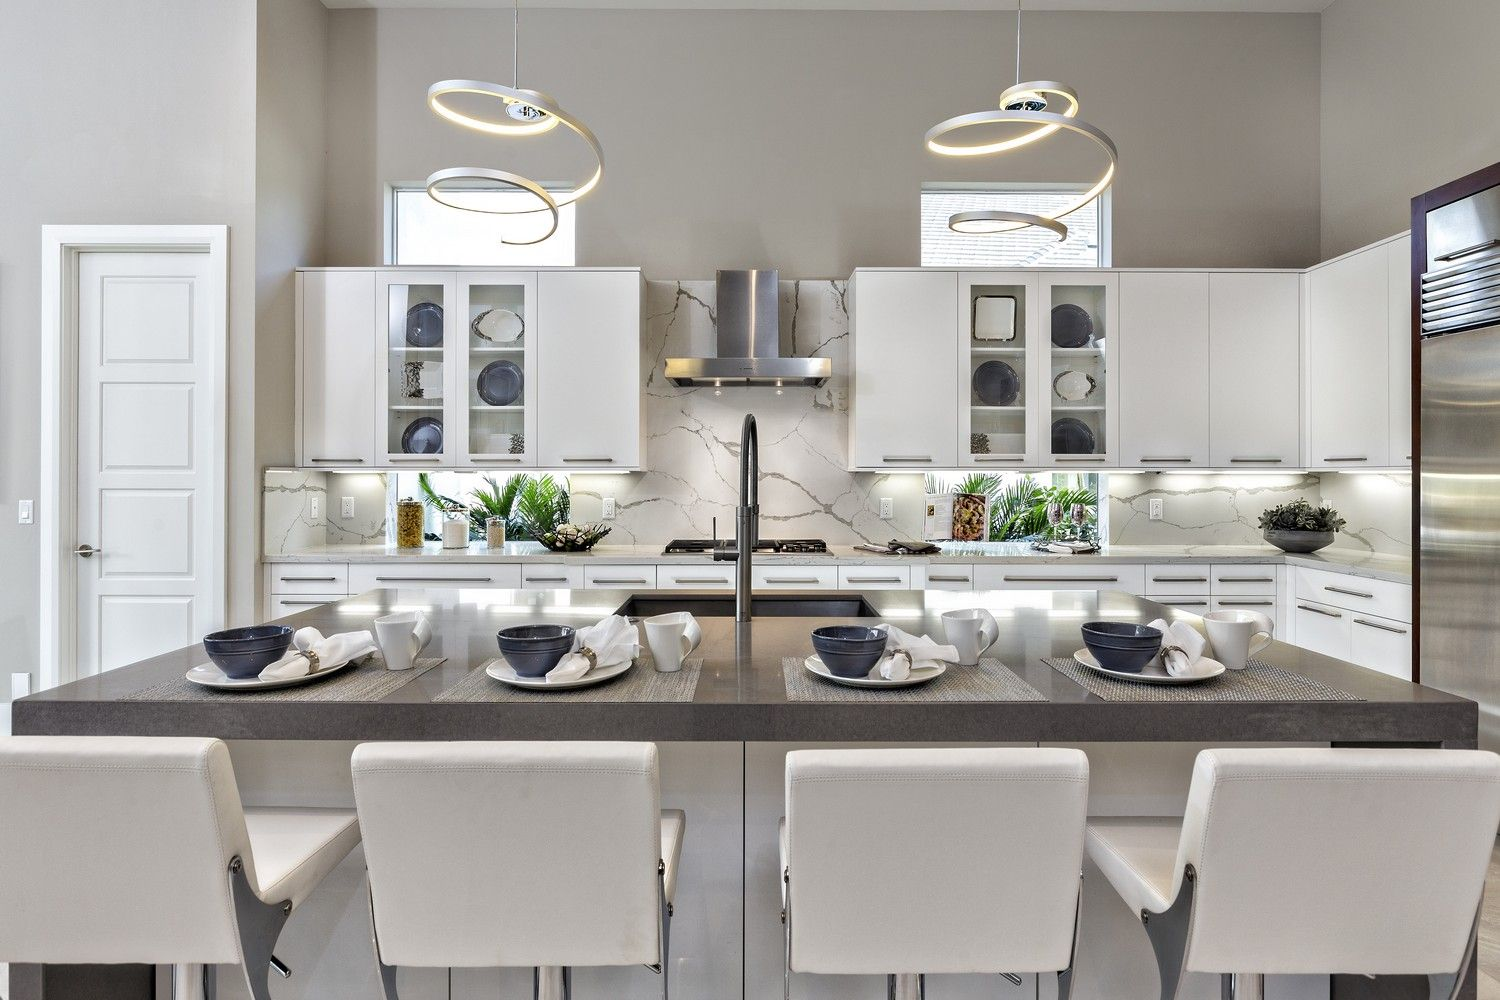 We love everything about this kitchen design! What's one ...